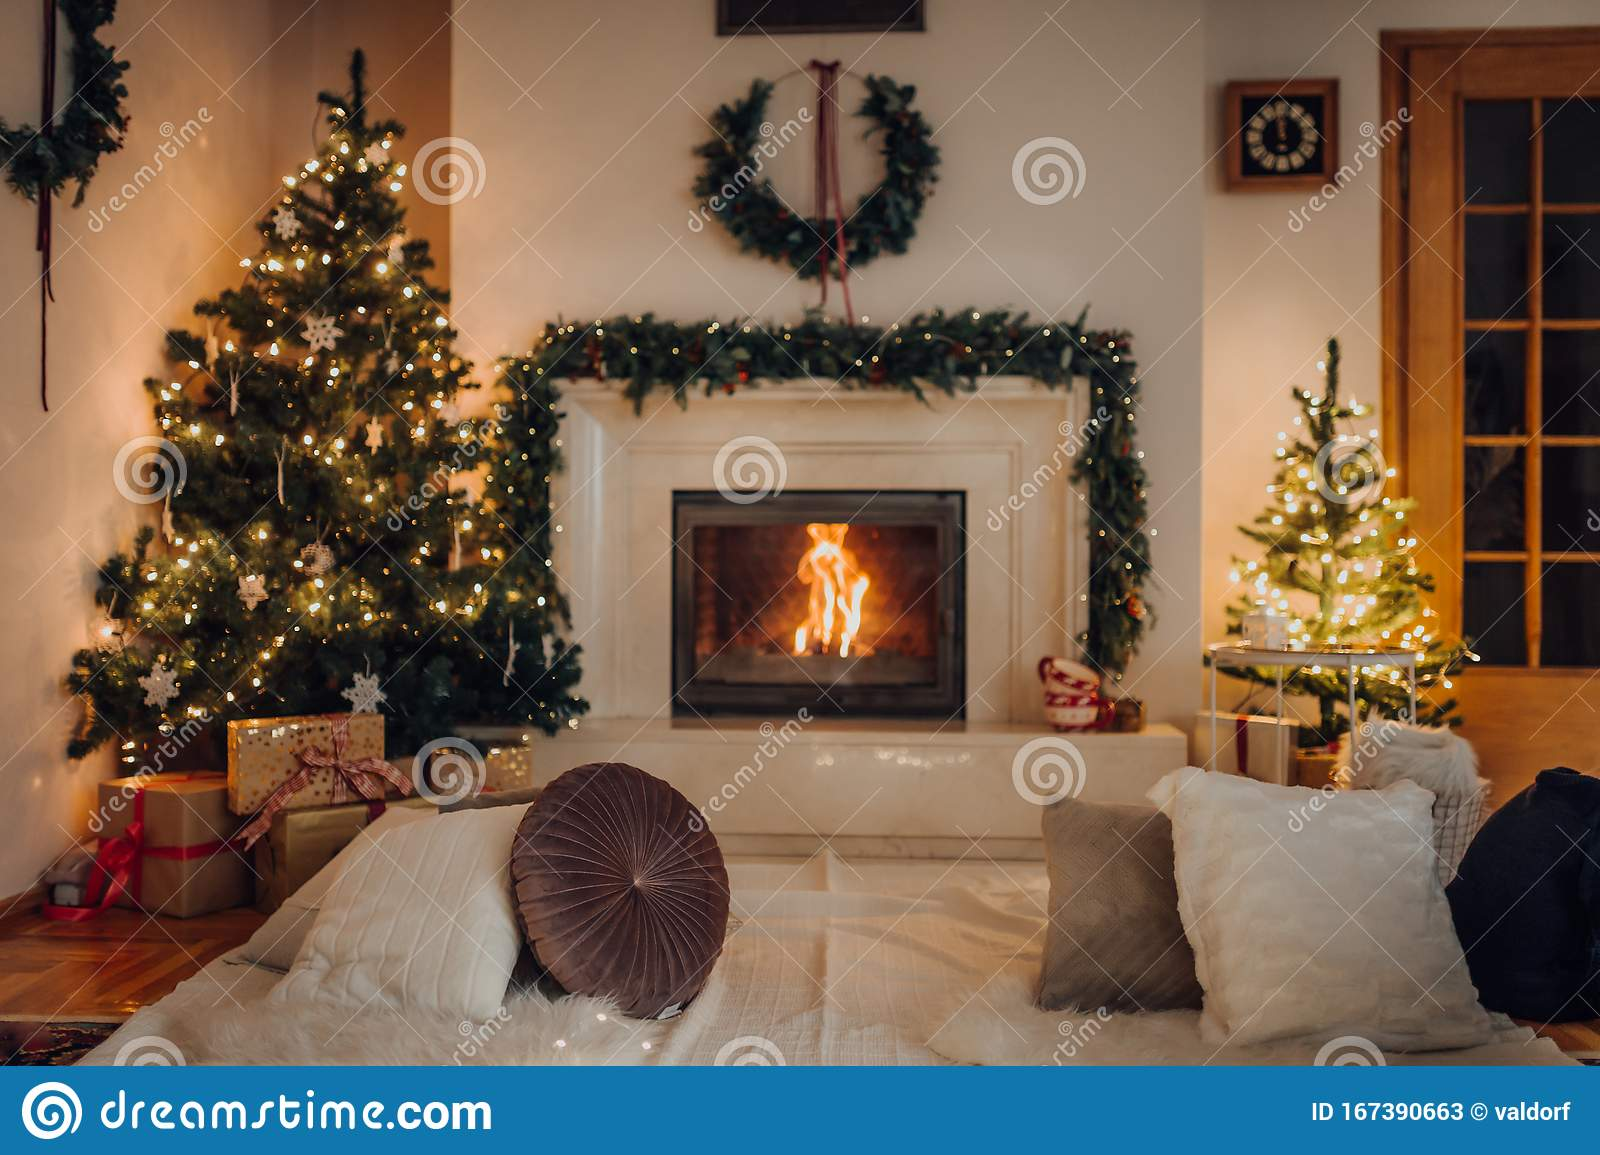 Living Room With Beautiful Fireplace Decorated For Christmas Stock Image Image Of Indoors Decor 167390663